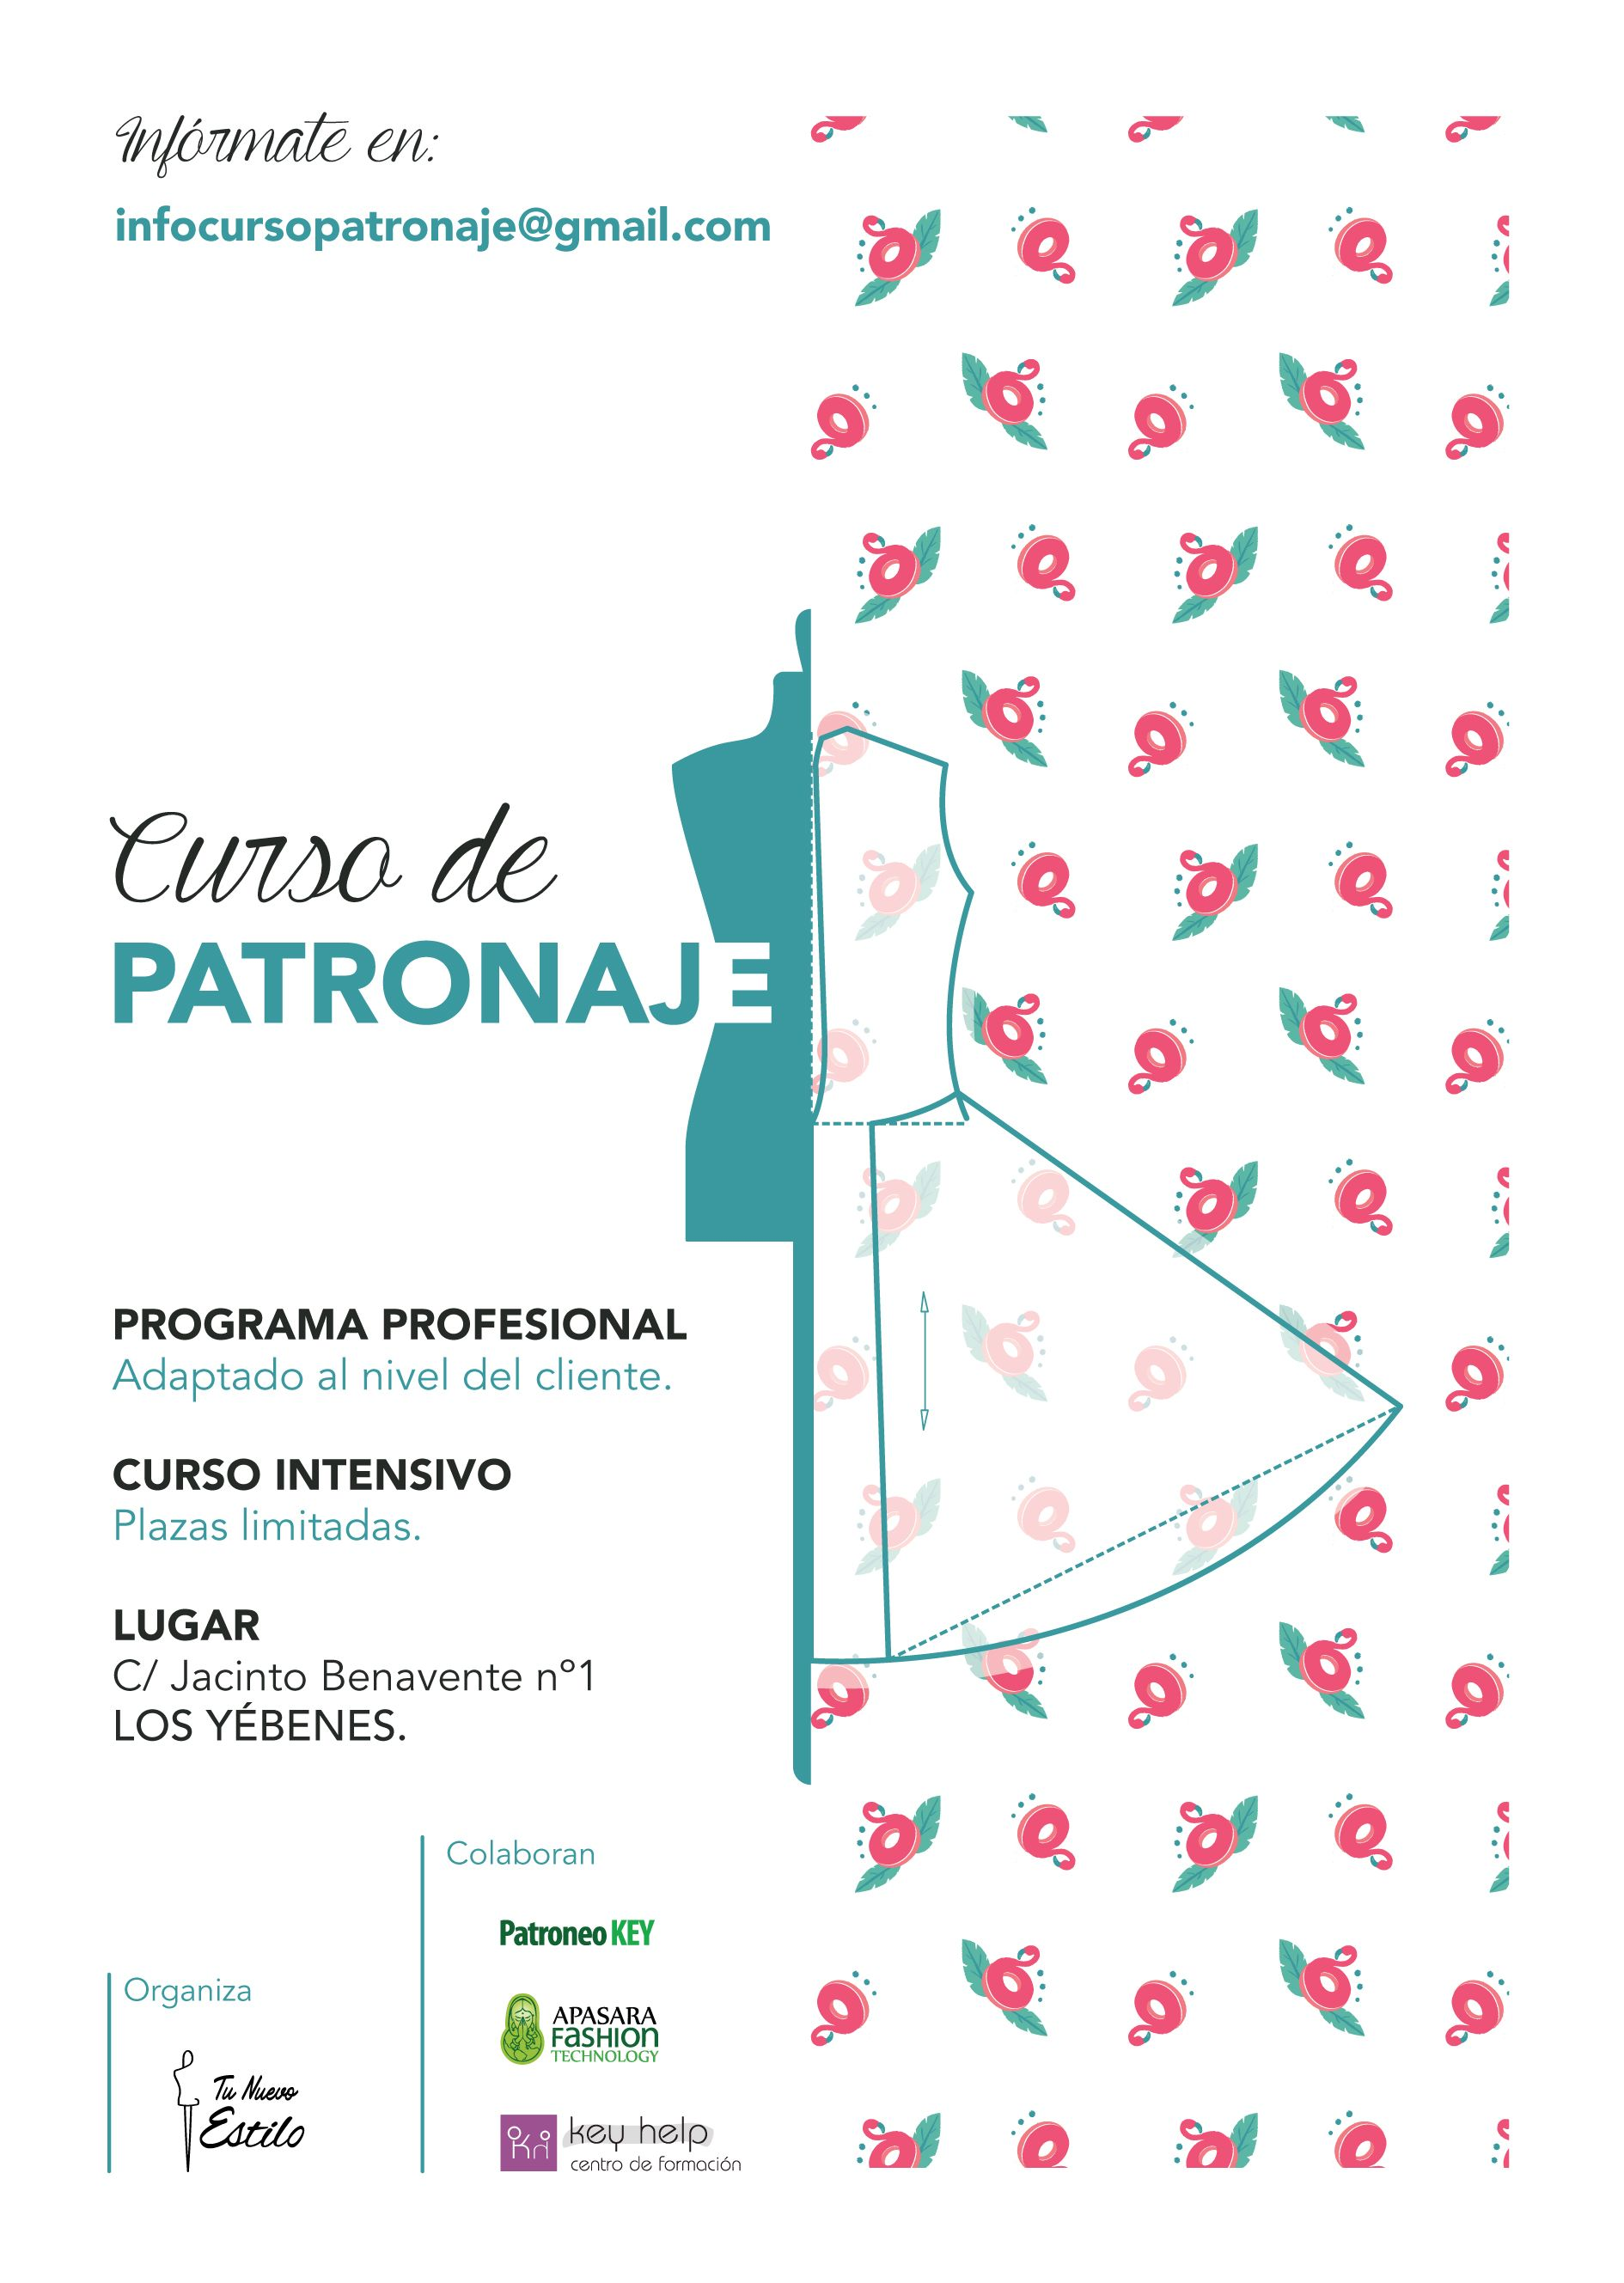 CURSO DE PATRONAJE INDUSTRIAL:  Shop on line de JULIA CASAS GARCÍA